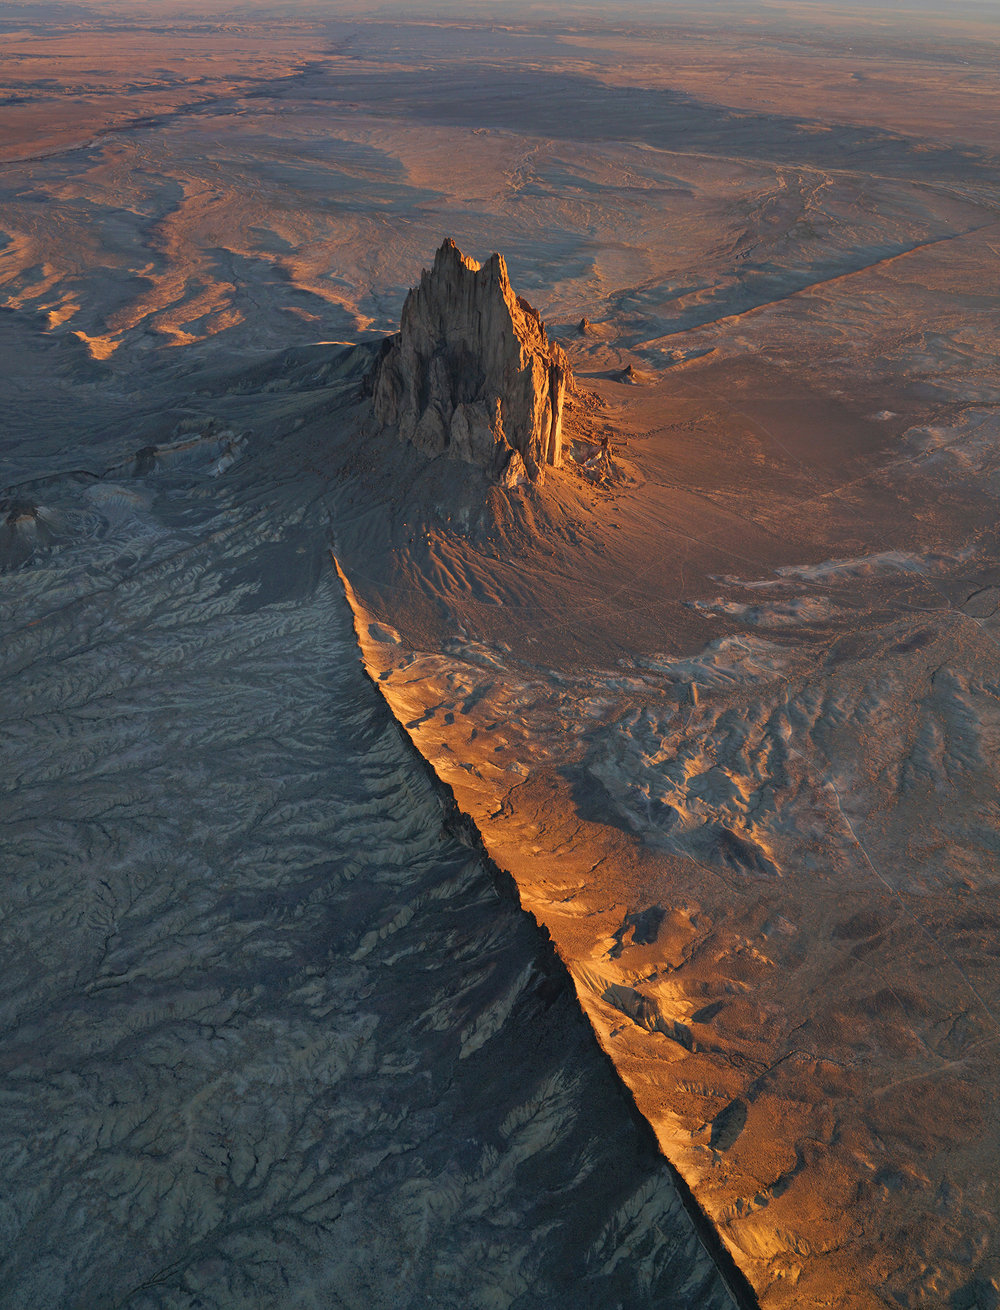 Shiprock at sunrise. Photo by Chris Dahl-Bredine